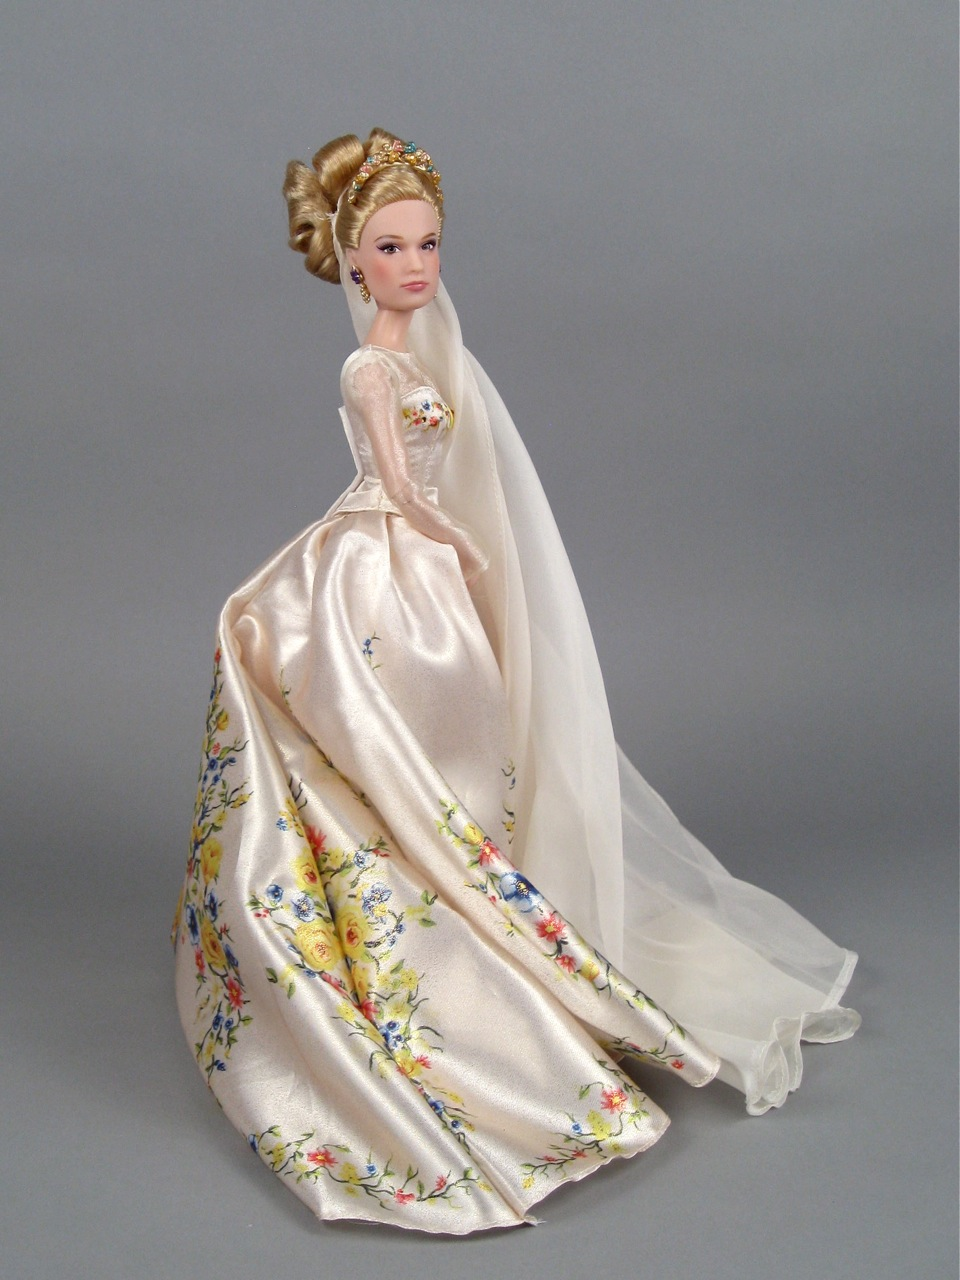 Disney Store's wedding Cinderella doll